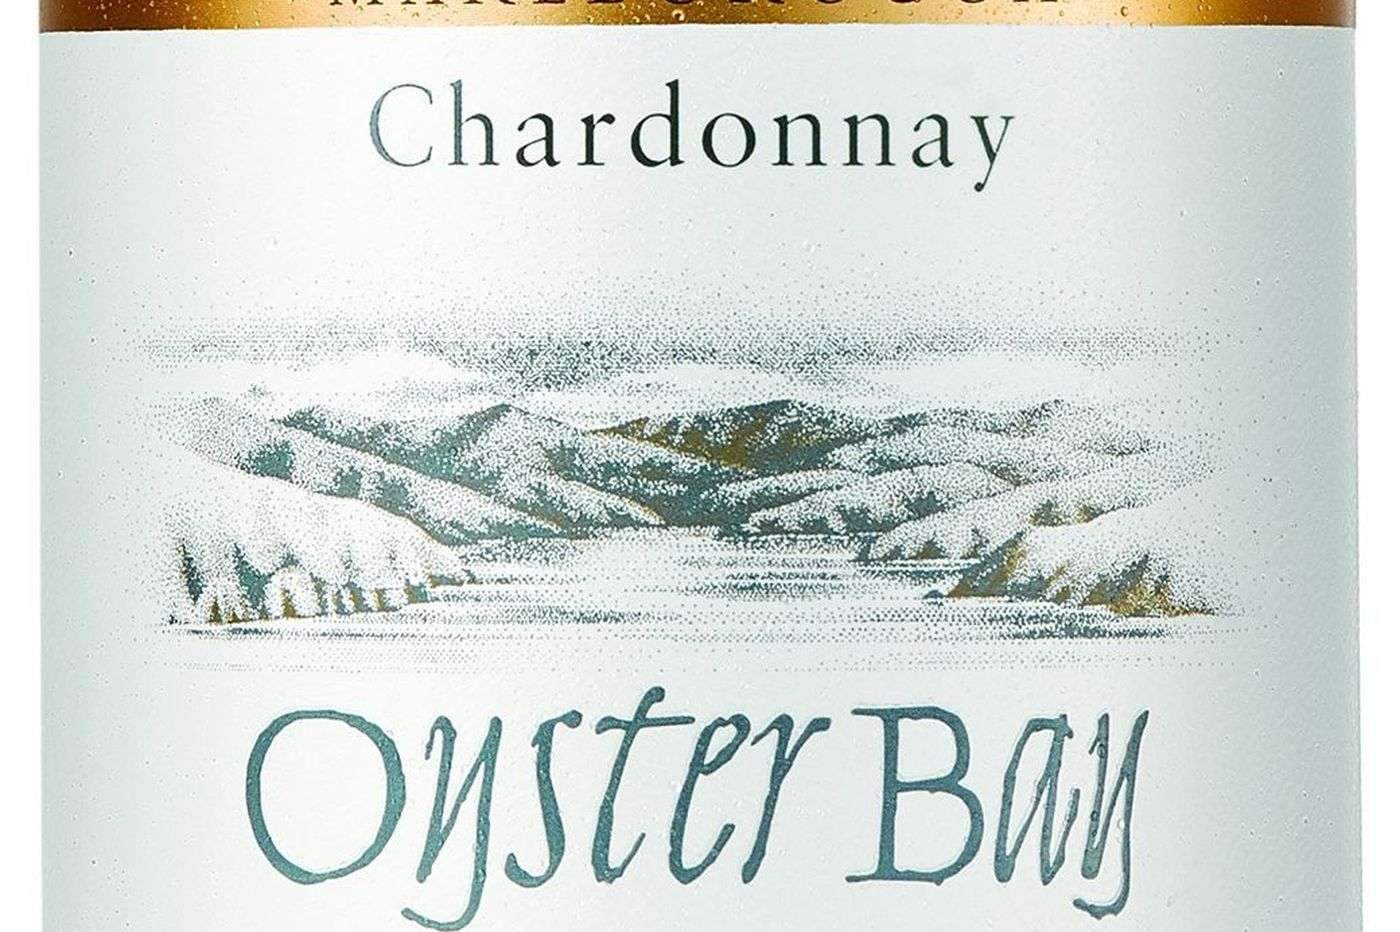 Great Wine Values: Oyster Bay Chardonnay